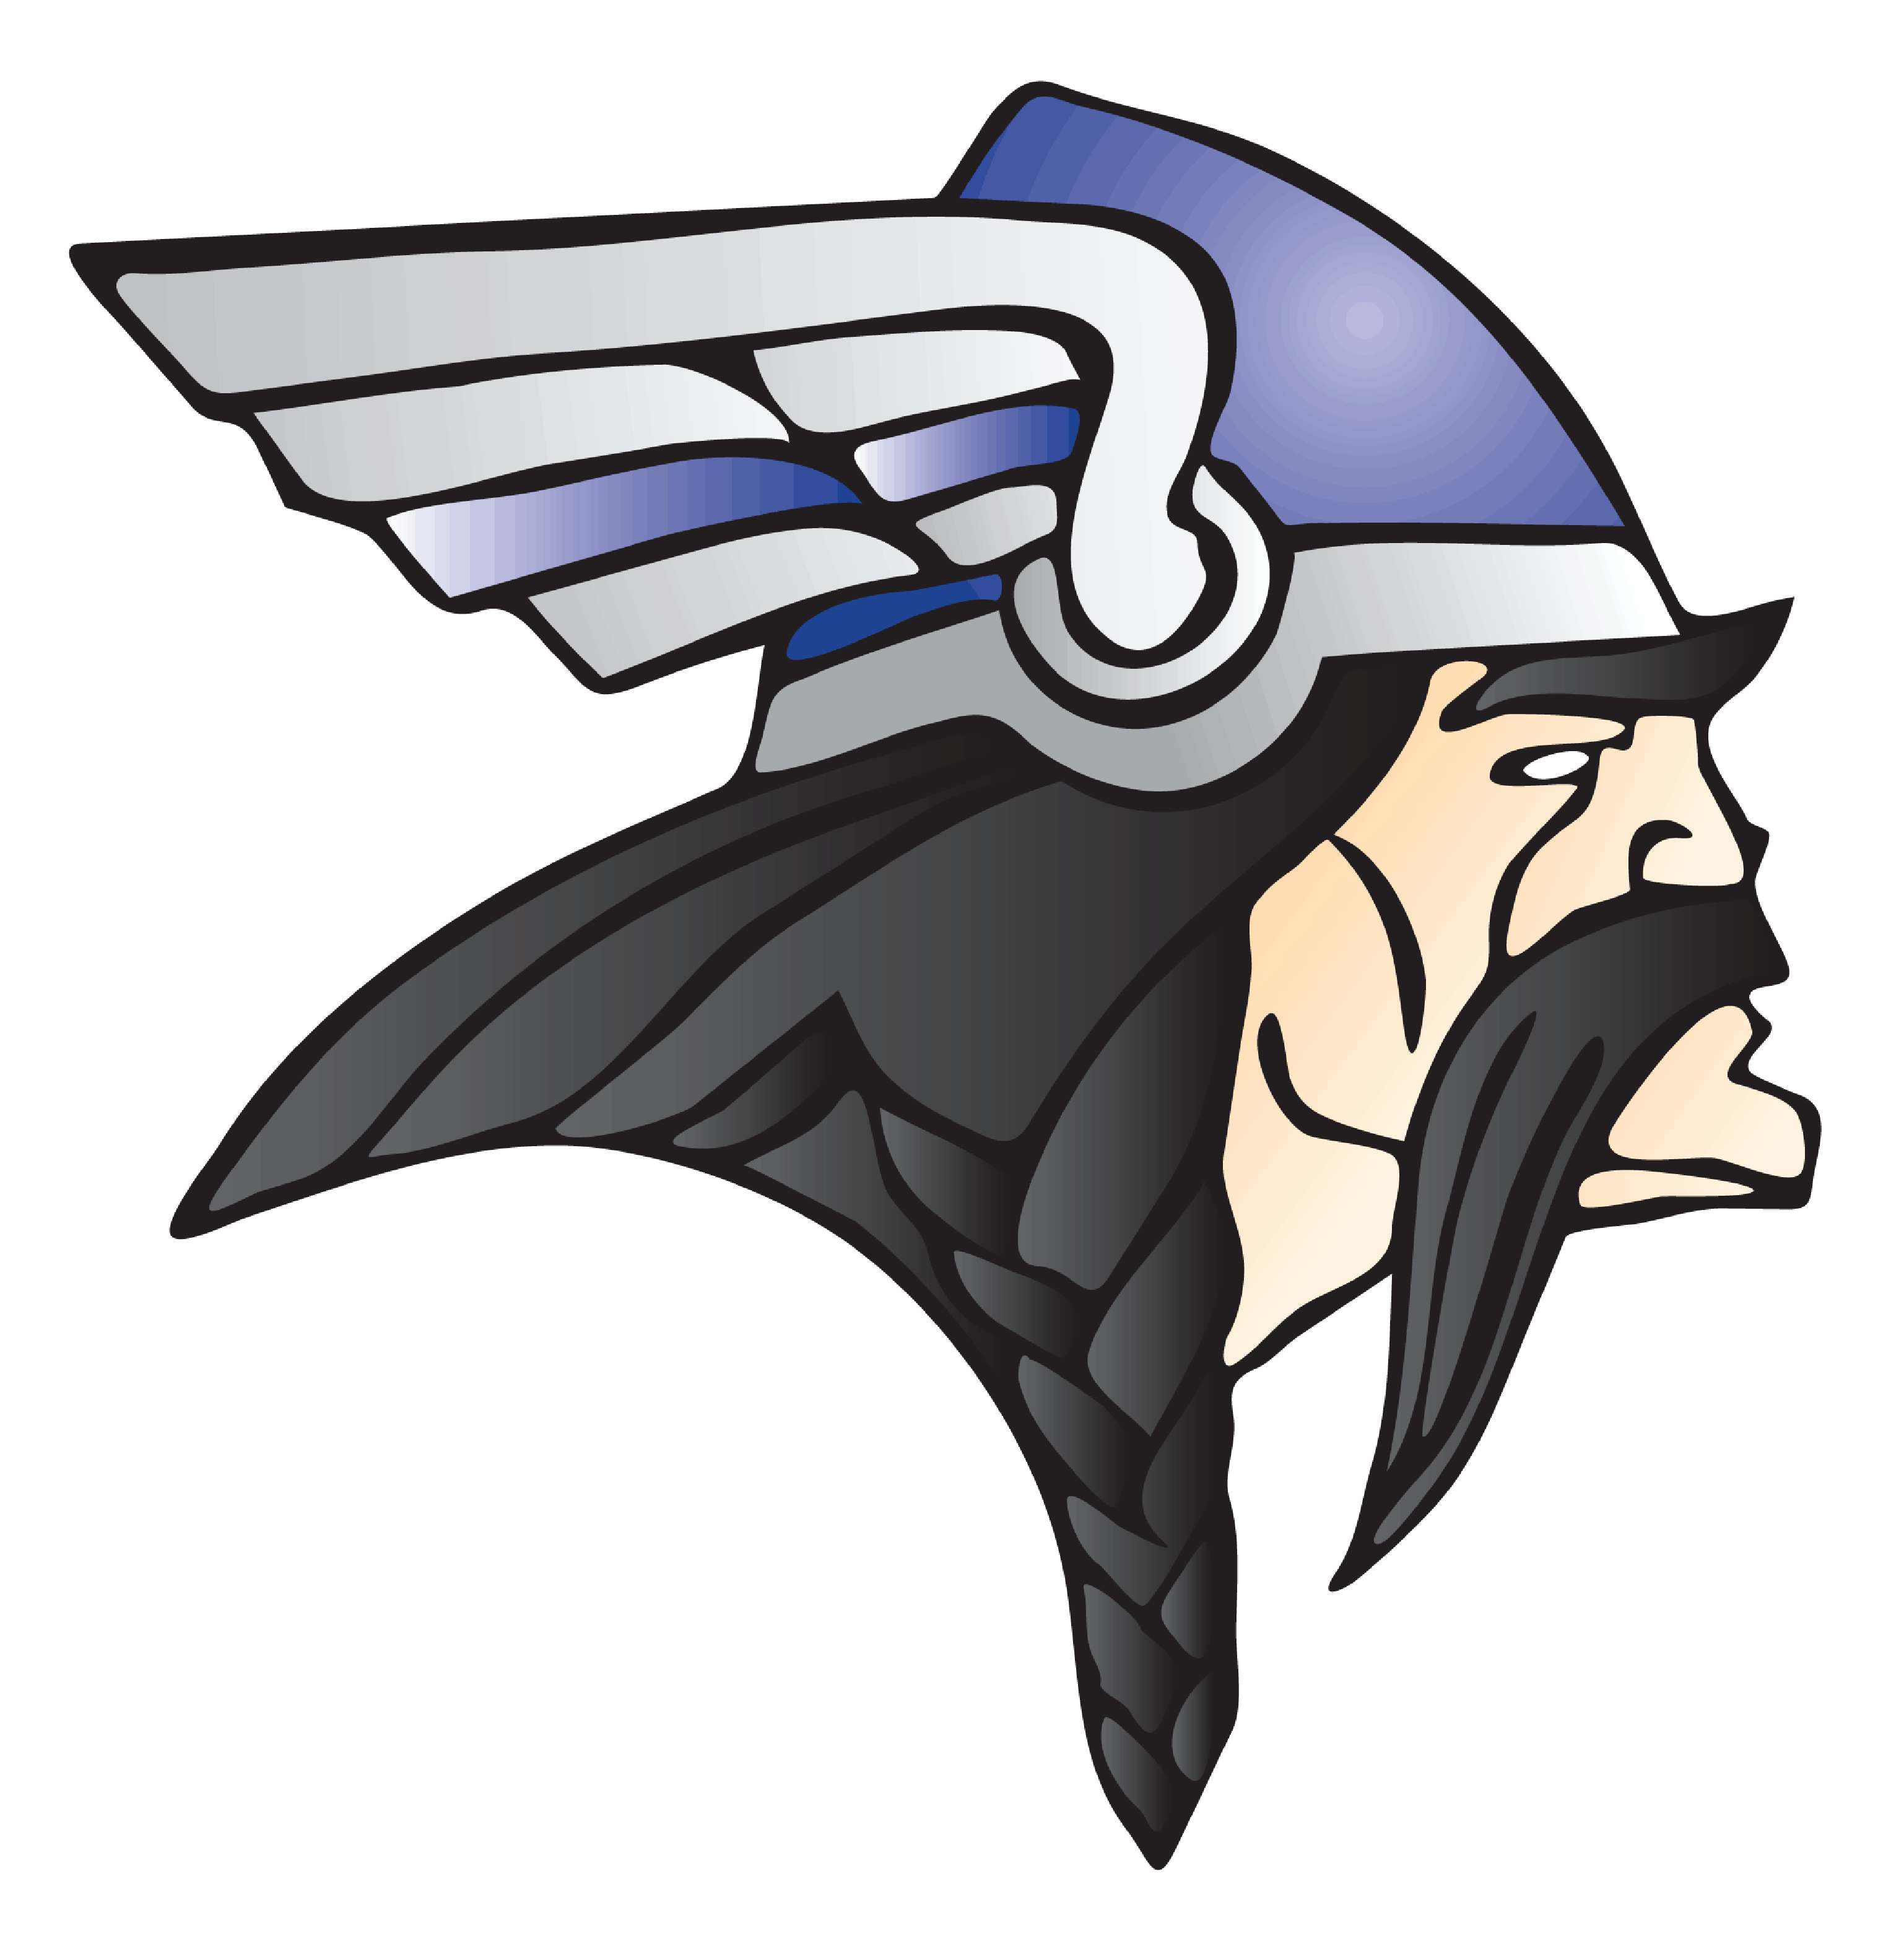 High school mascot clipart clip black and white library Communications / High School Logos clip black and white library